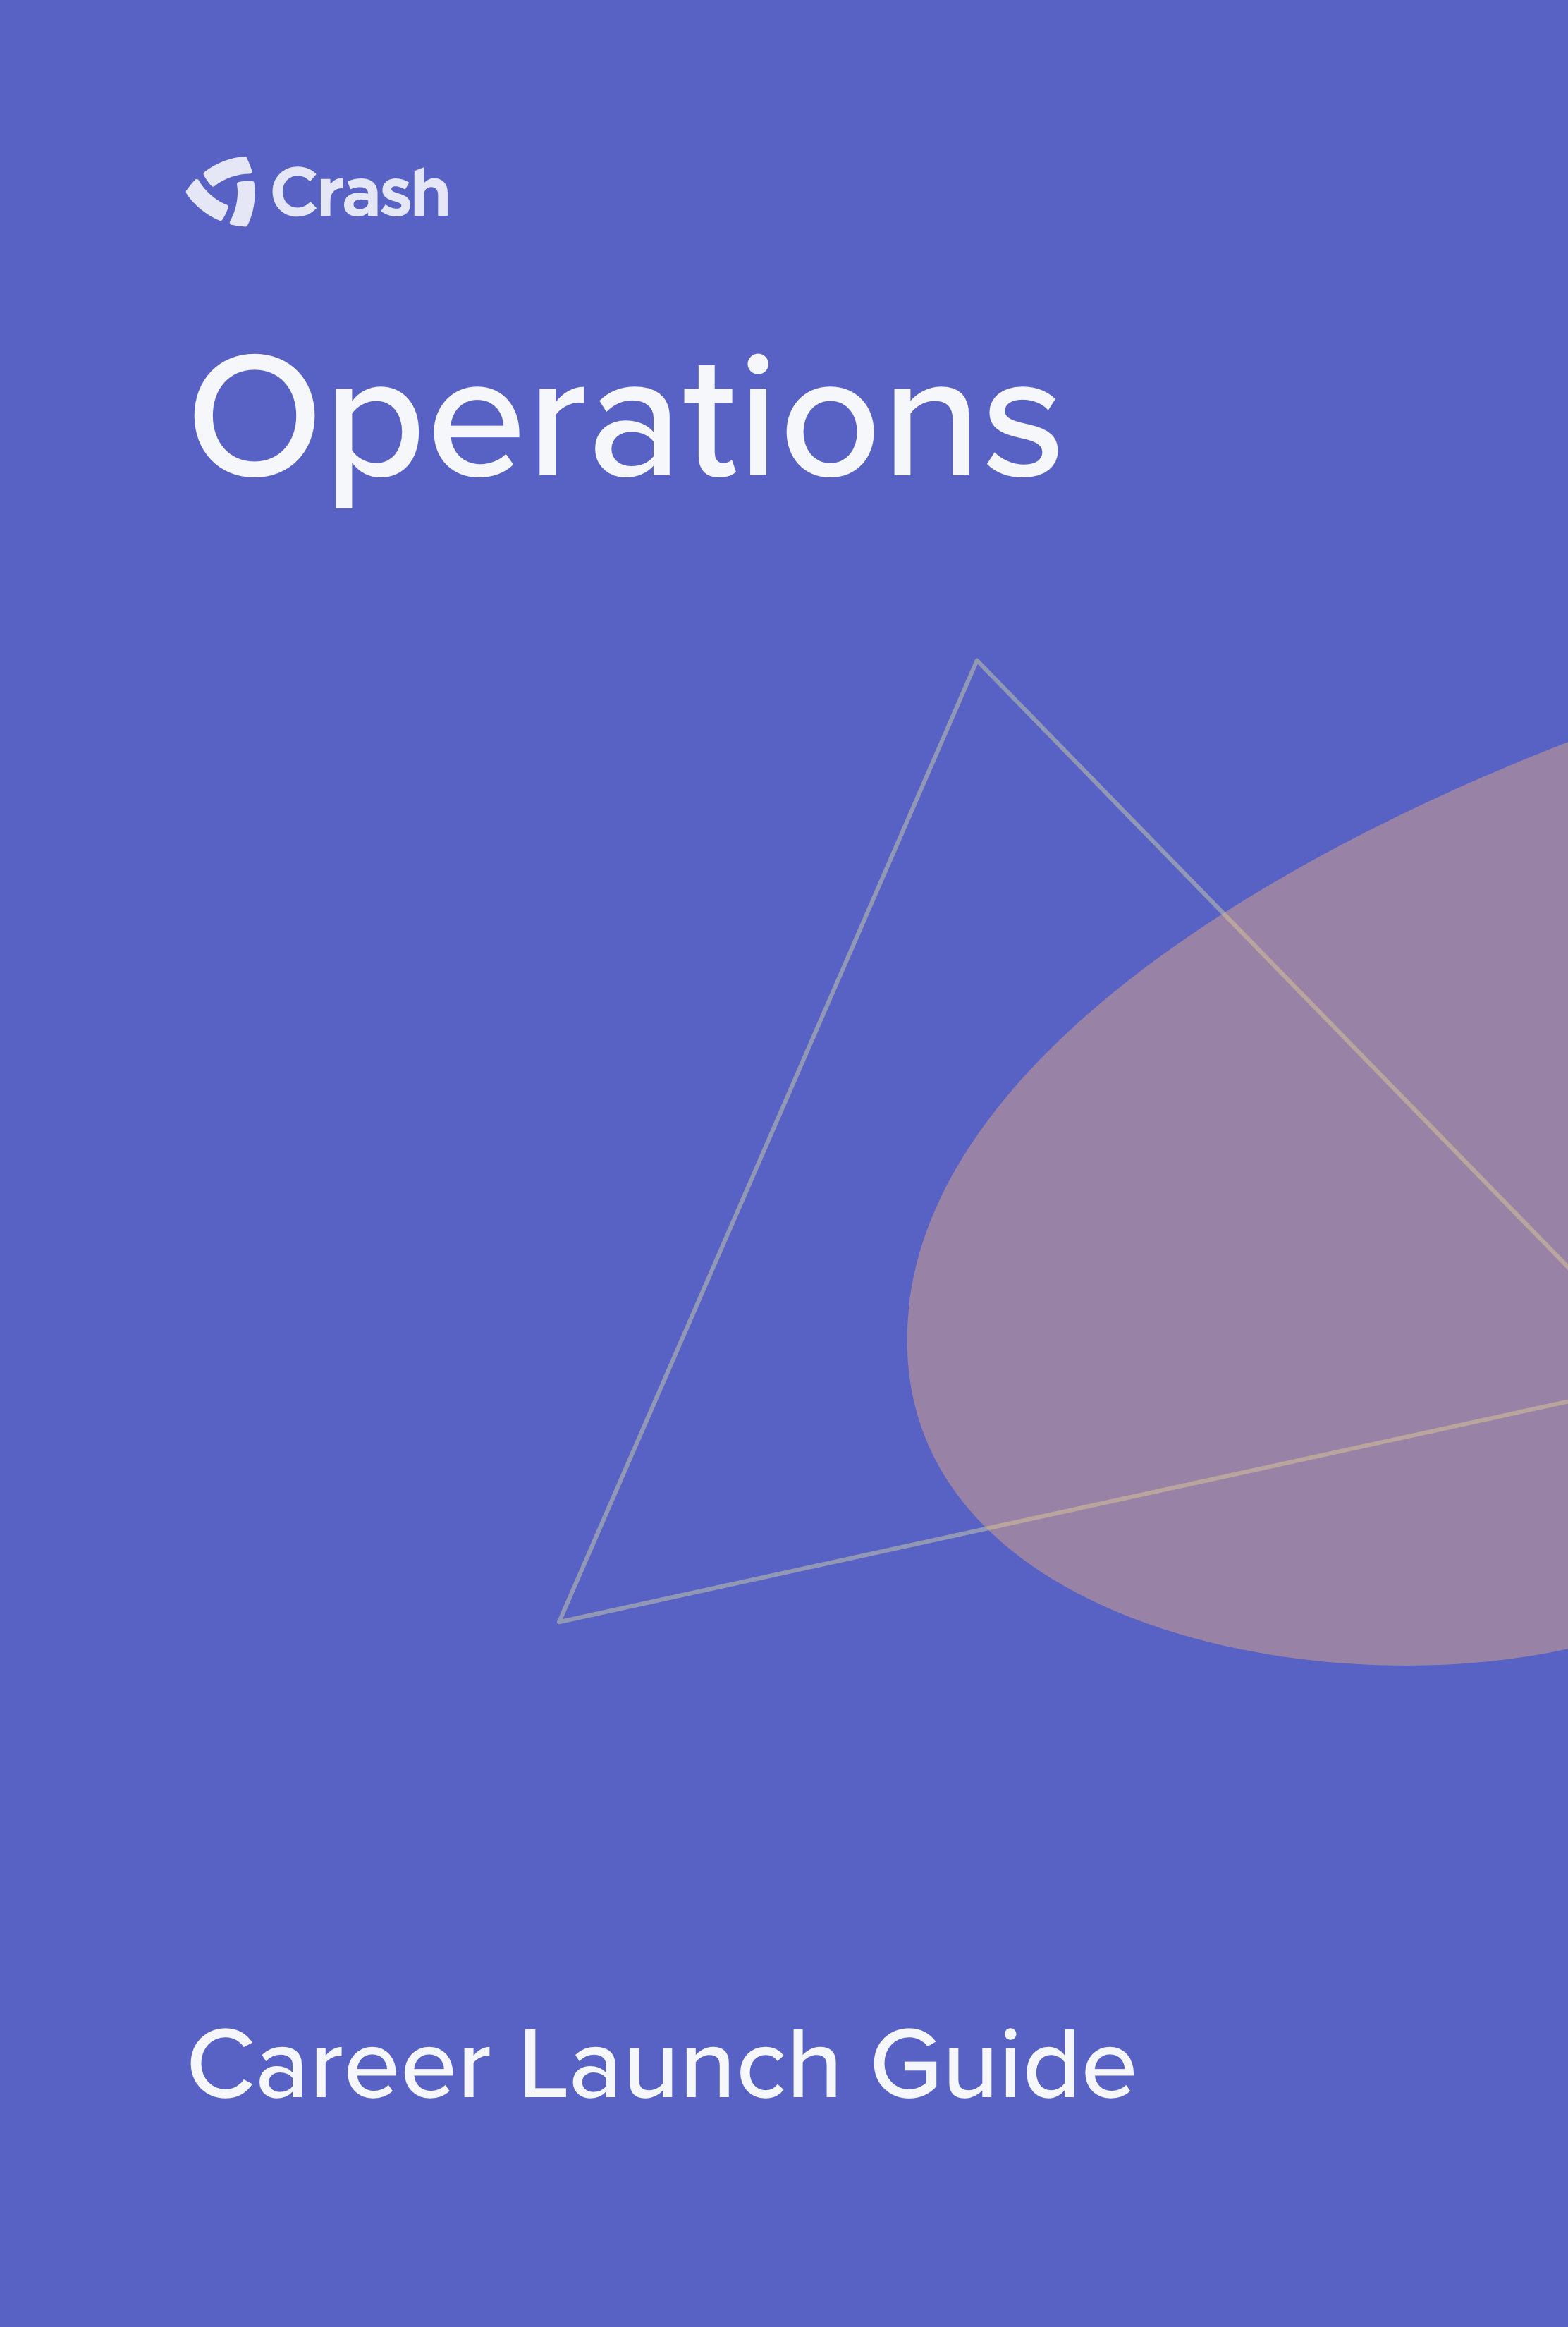 operations careers crash guide cover image